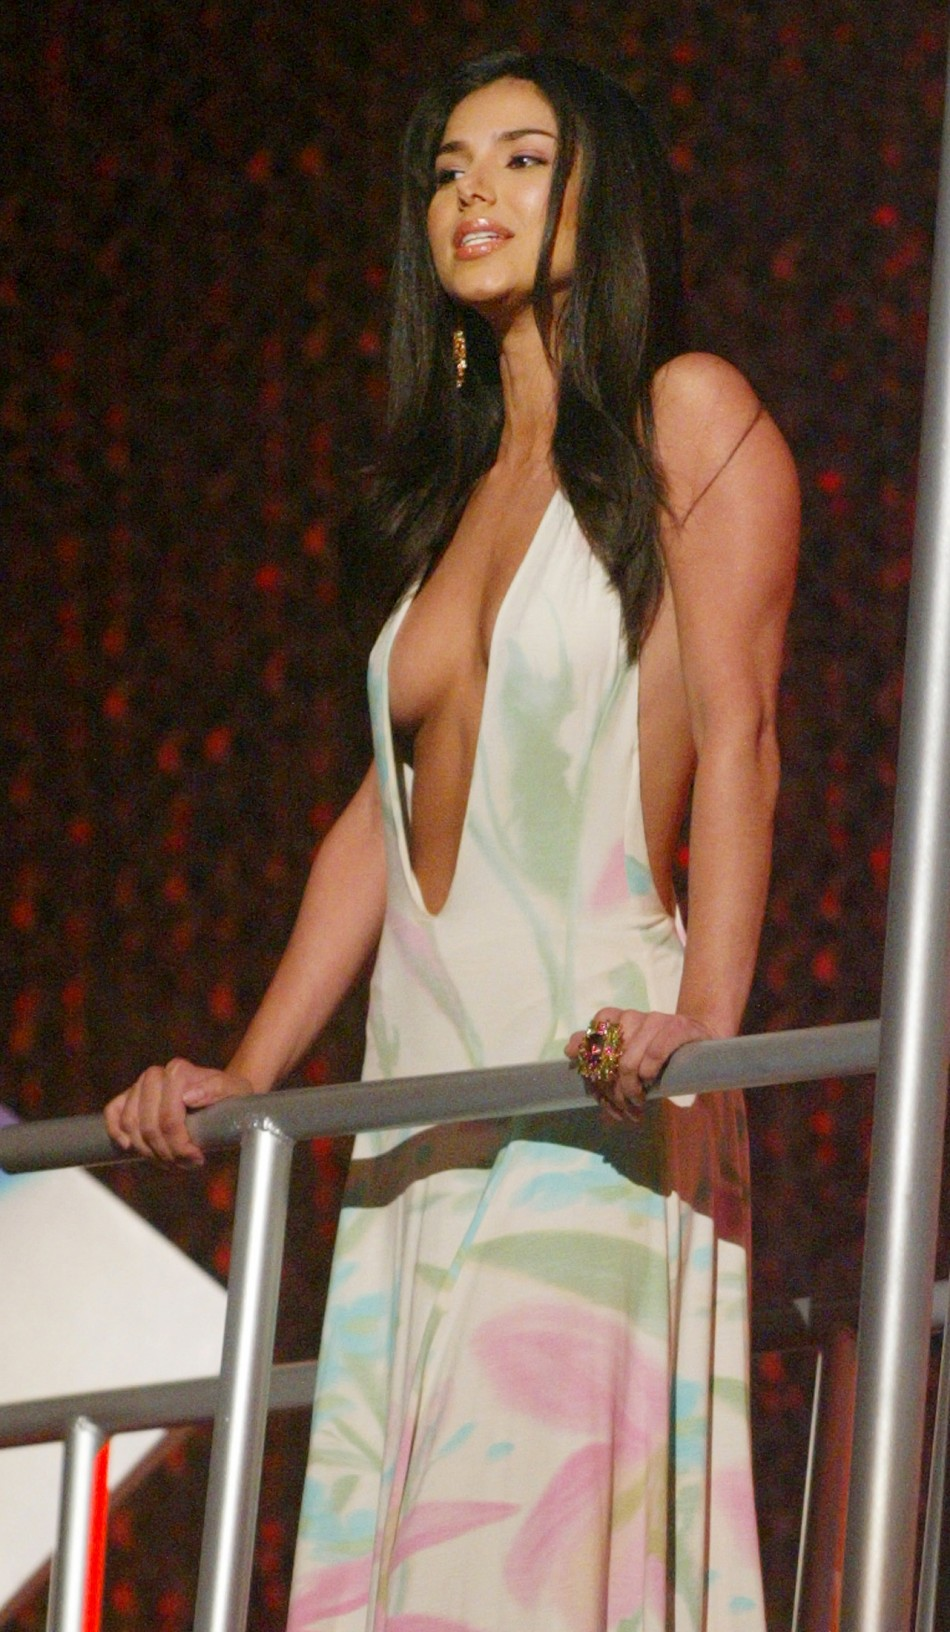 Actress Rosalyn Sanchez, star of the film Chasing Papi act as a presenter at the 2003 MTV Movie Awards which were taped in Los Angeles May 31, 2003.